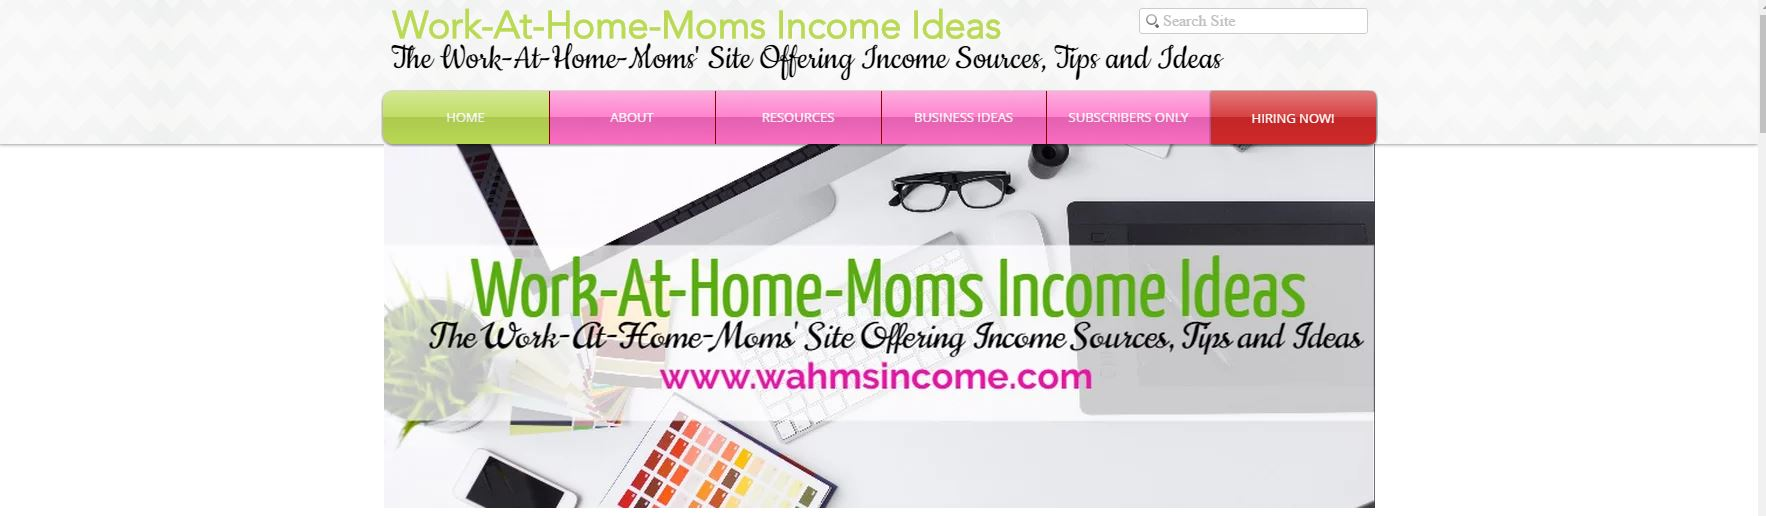 Work At Home Moms Income | wahmsincome.com